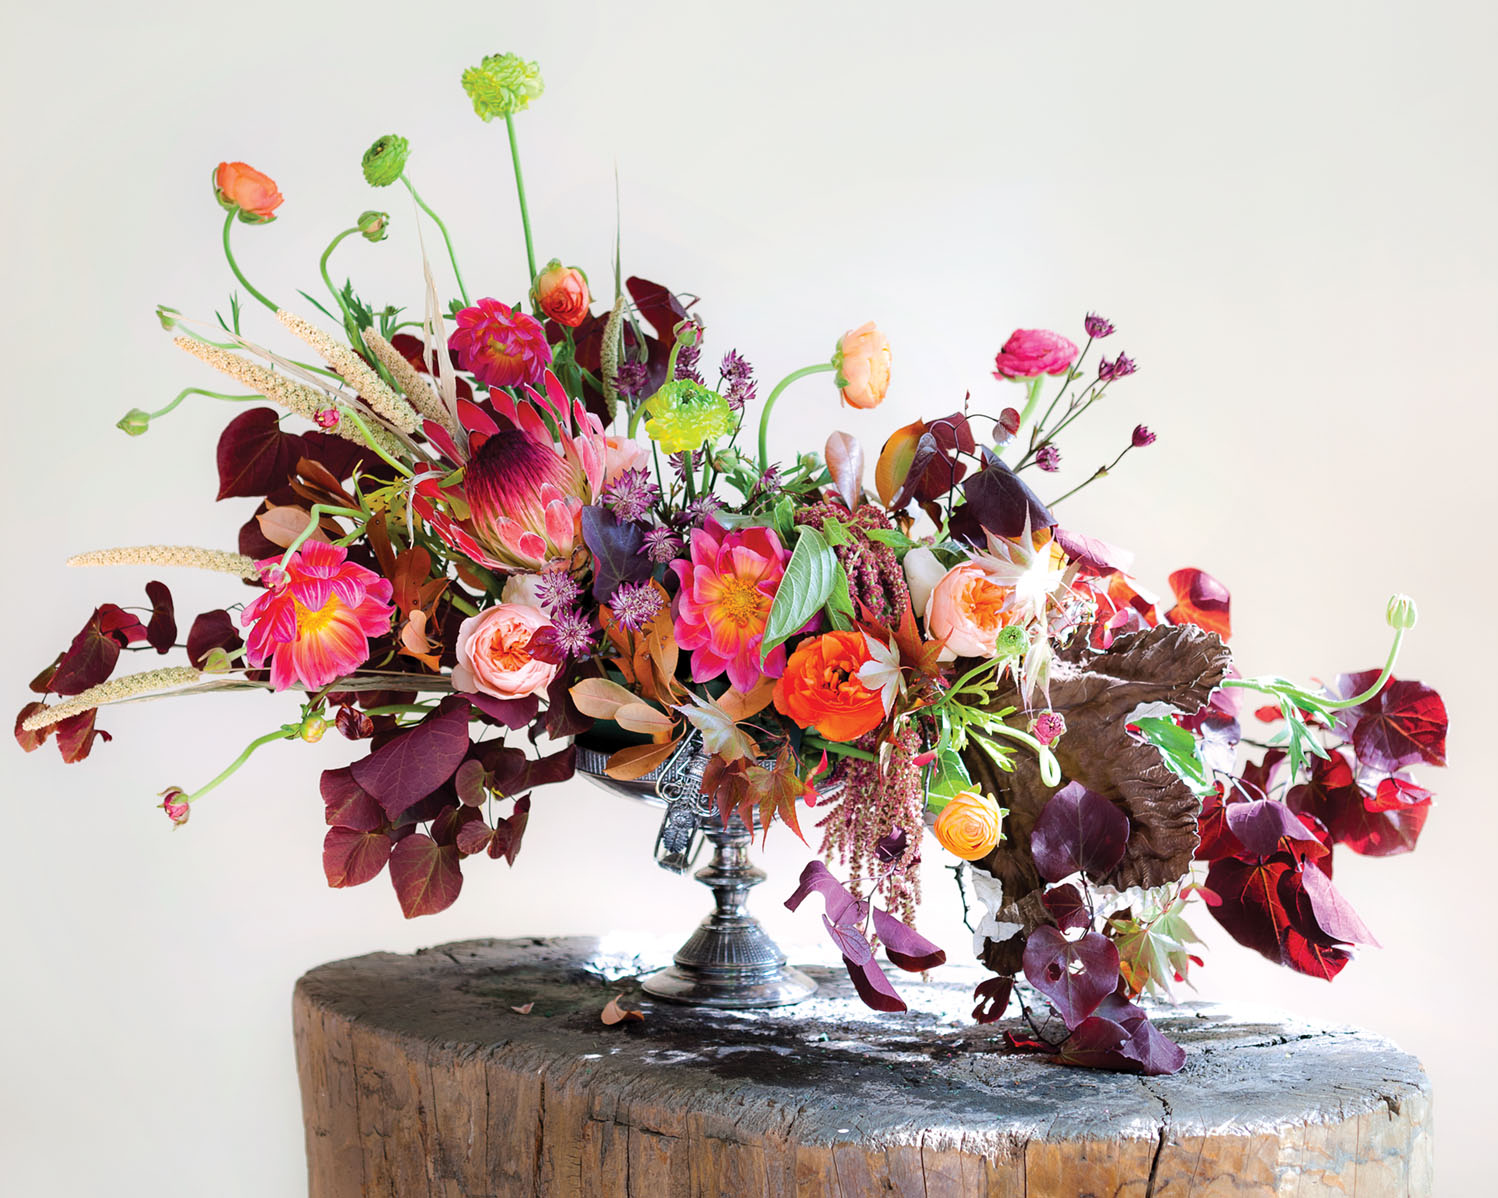 S-curve floral design in a compote vase, featuring autumnal hues along with brighter pops of pink and green